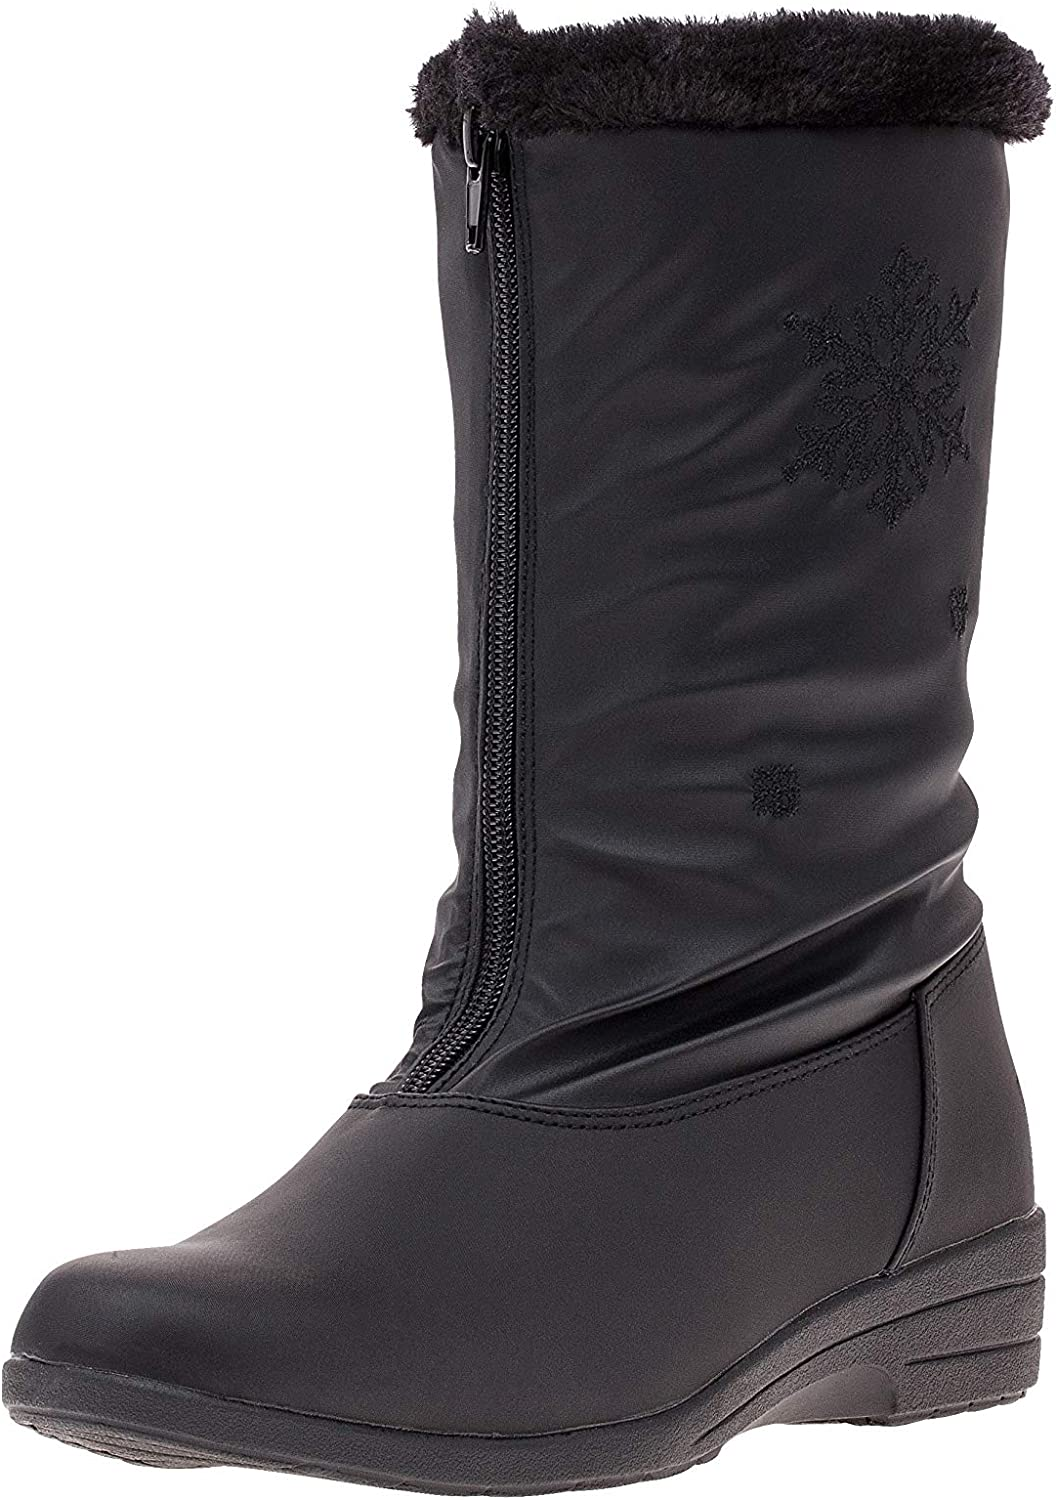 Boston Accents Womens Cold Weather Boots with Front Zipper & Snowflake Accent (Snow) Waterproof Insulated Mid-Calf Winter Boots, Keeps Feet Warm & Dry